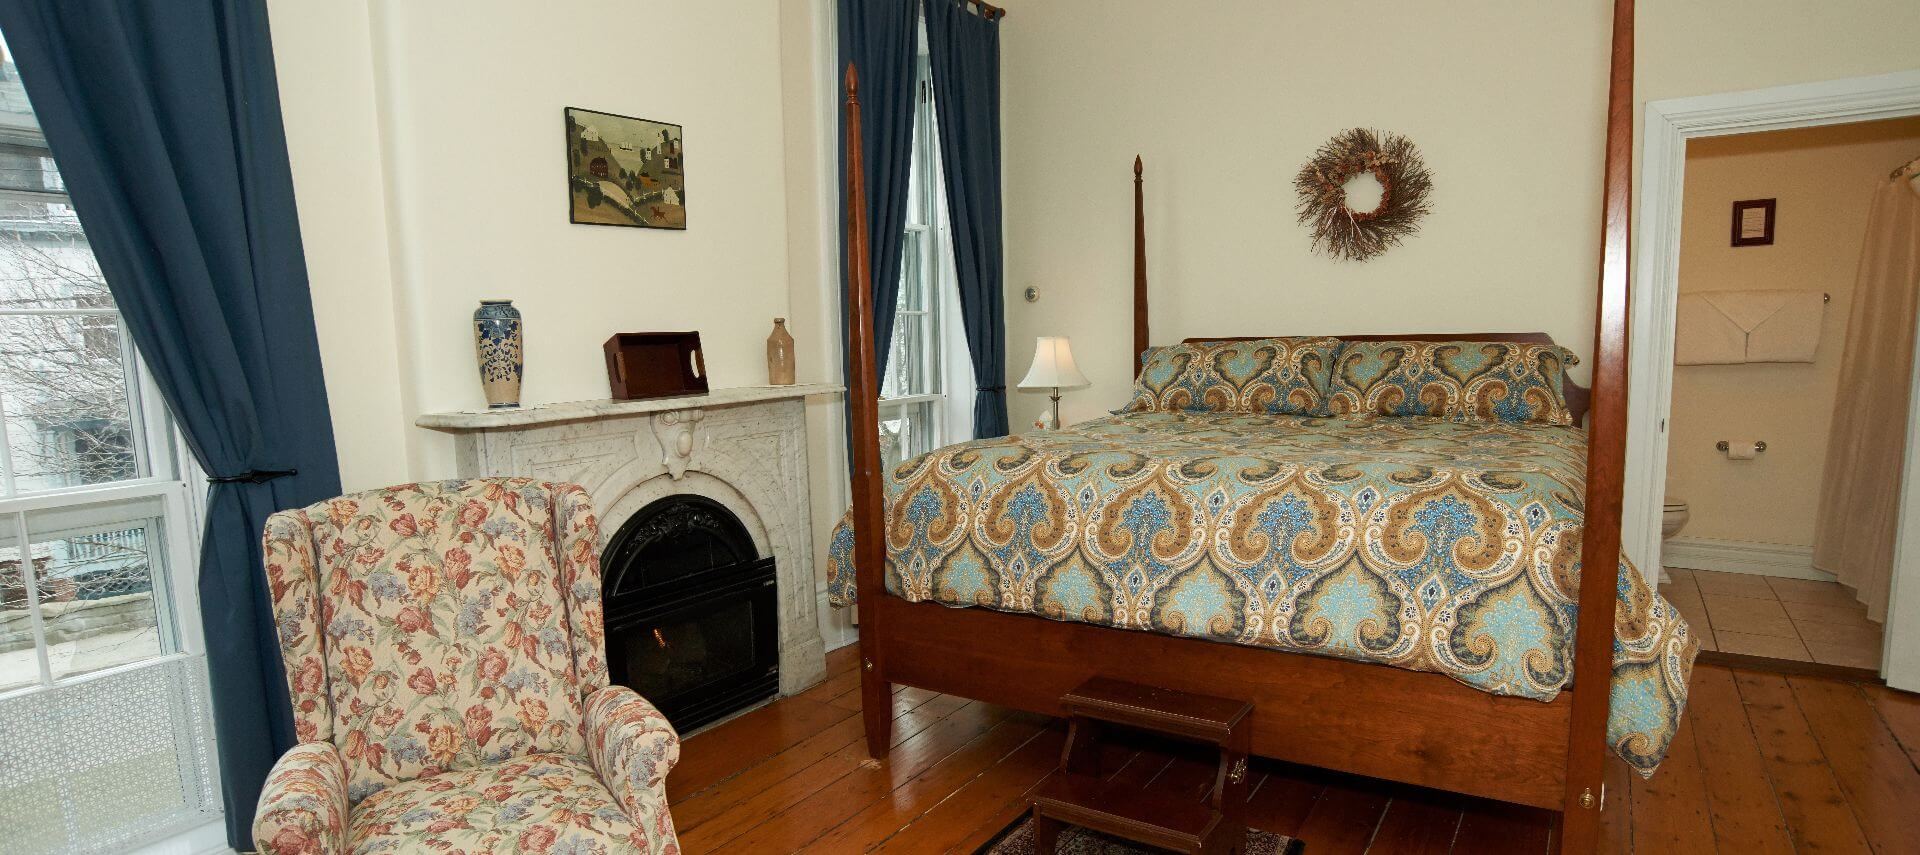 LArge king four-post bed next to fireplace and large window with a wing back chair.